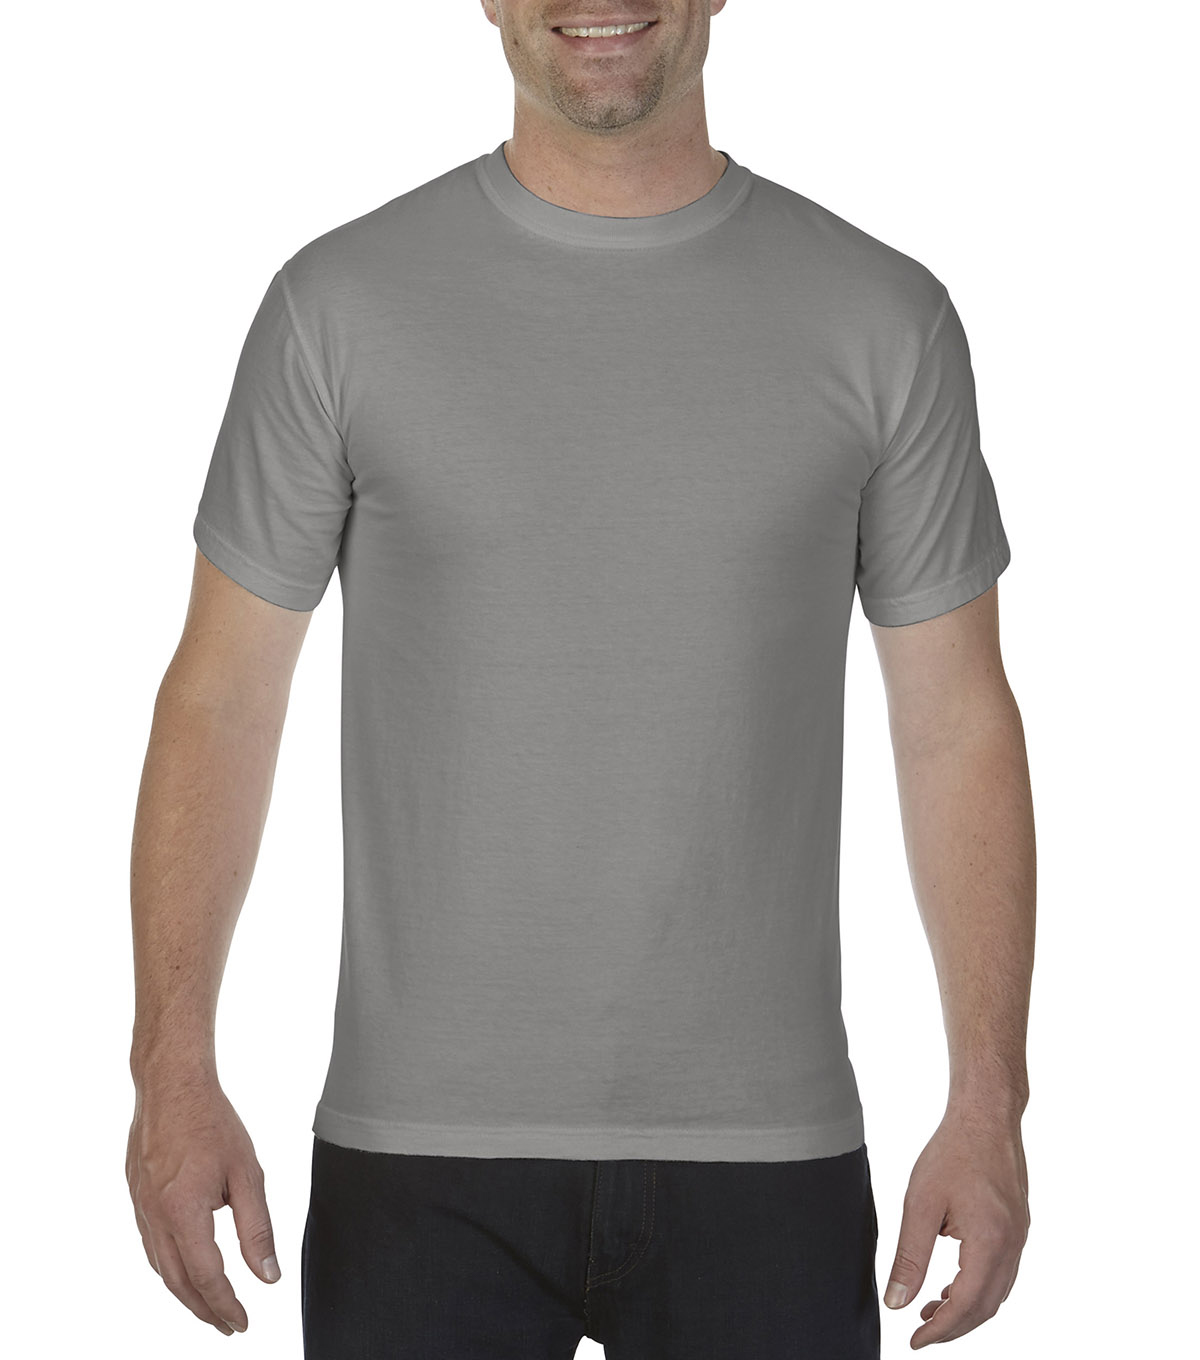 Adult Comfort Colors T-shirt-Medium, Grey